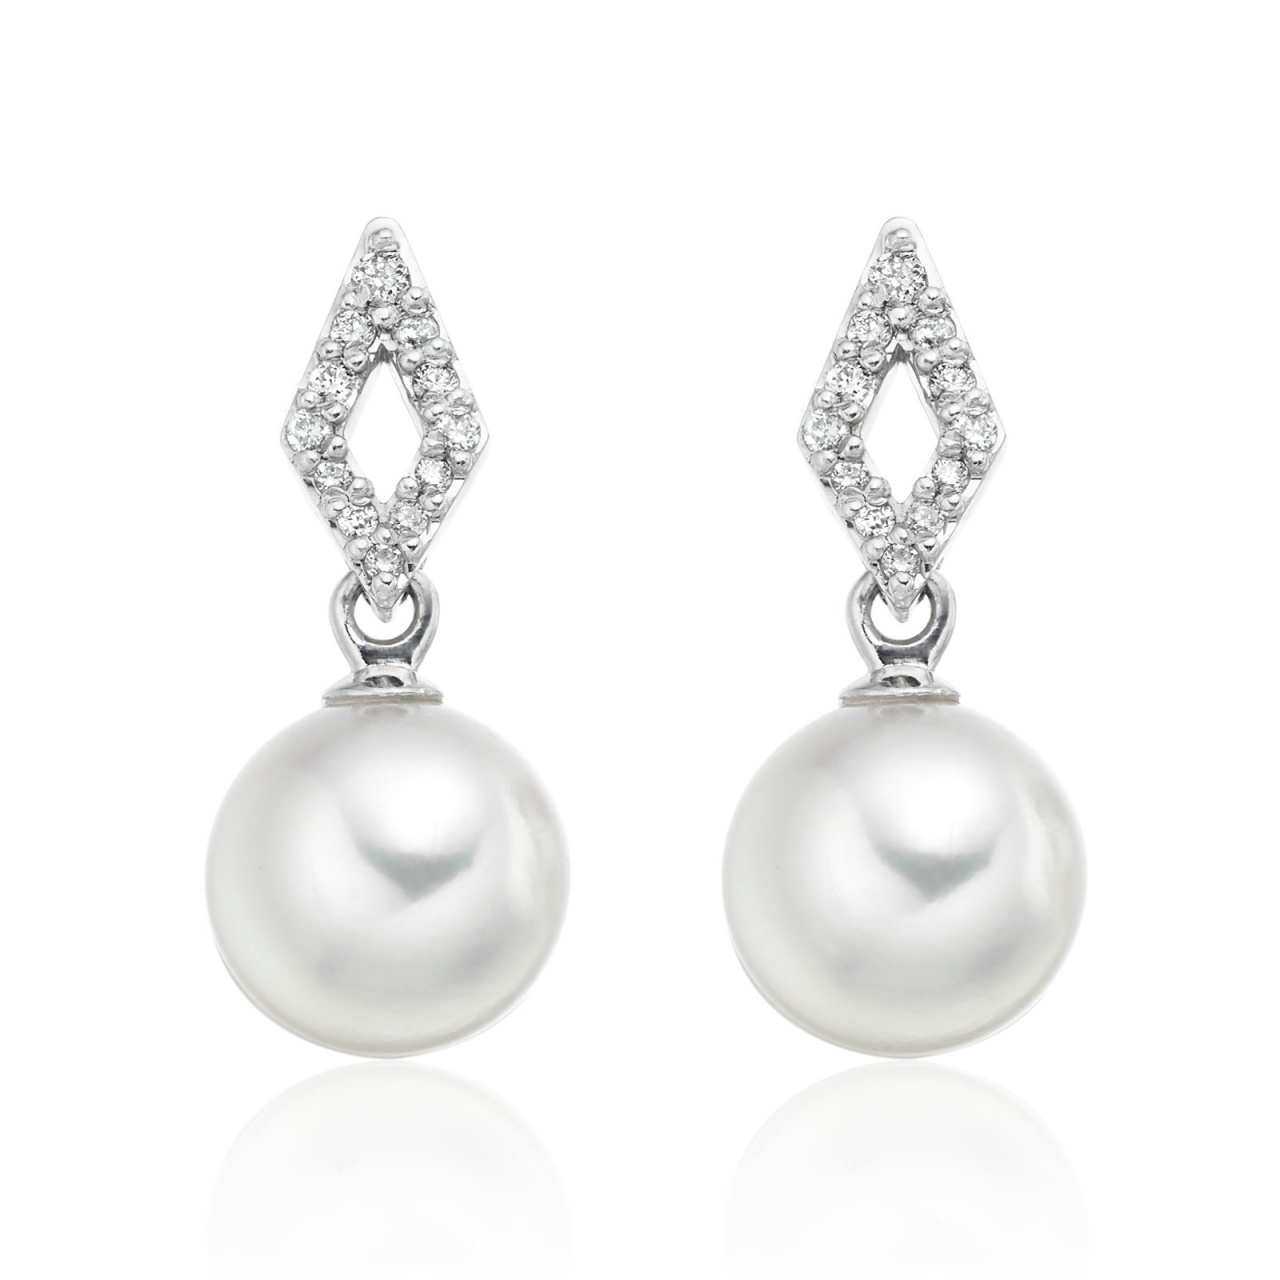 Zigzag Diamond Earrings in White Gold with Akoya Pearls